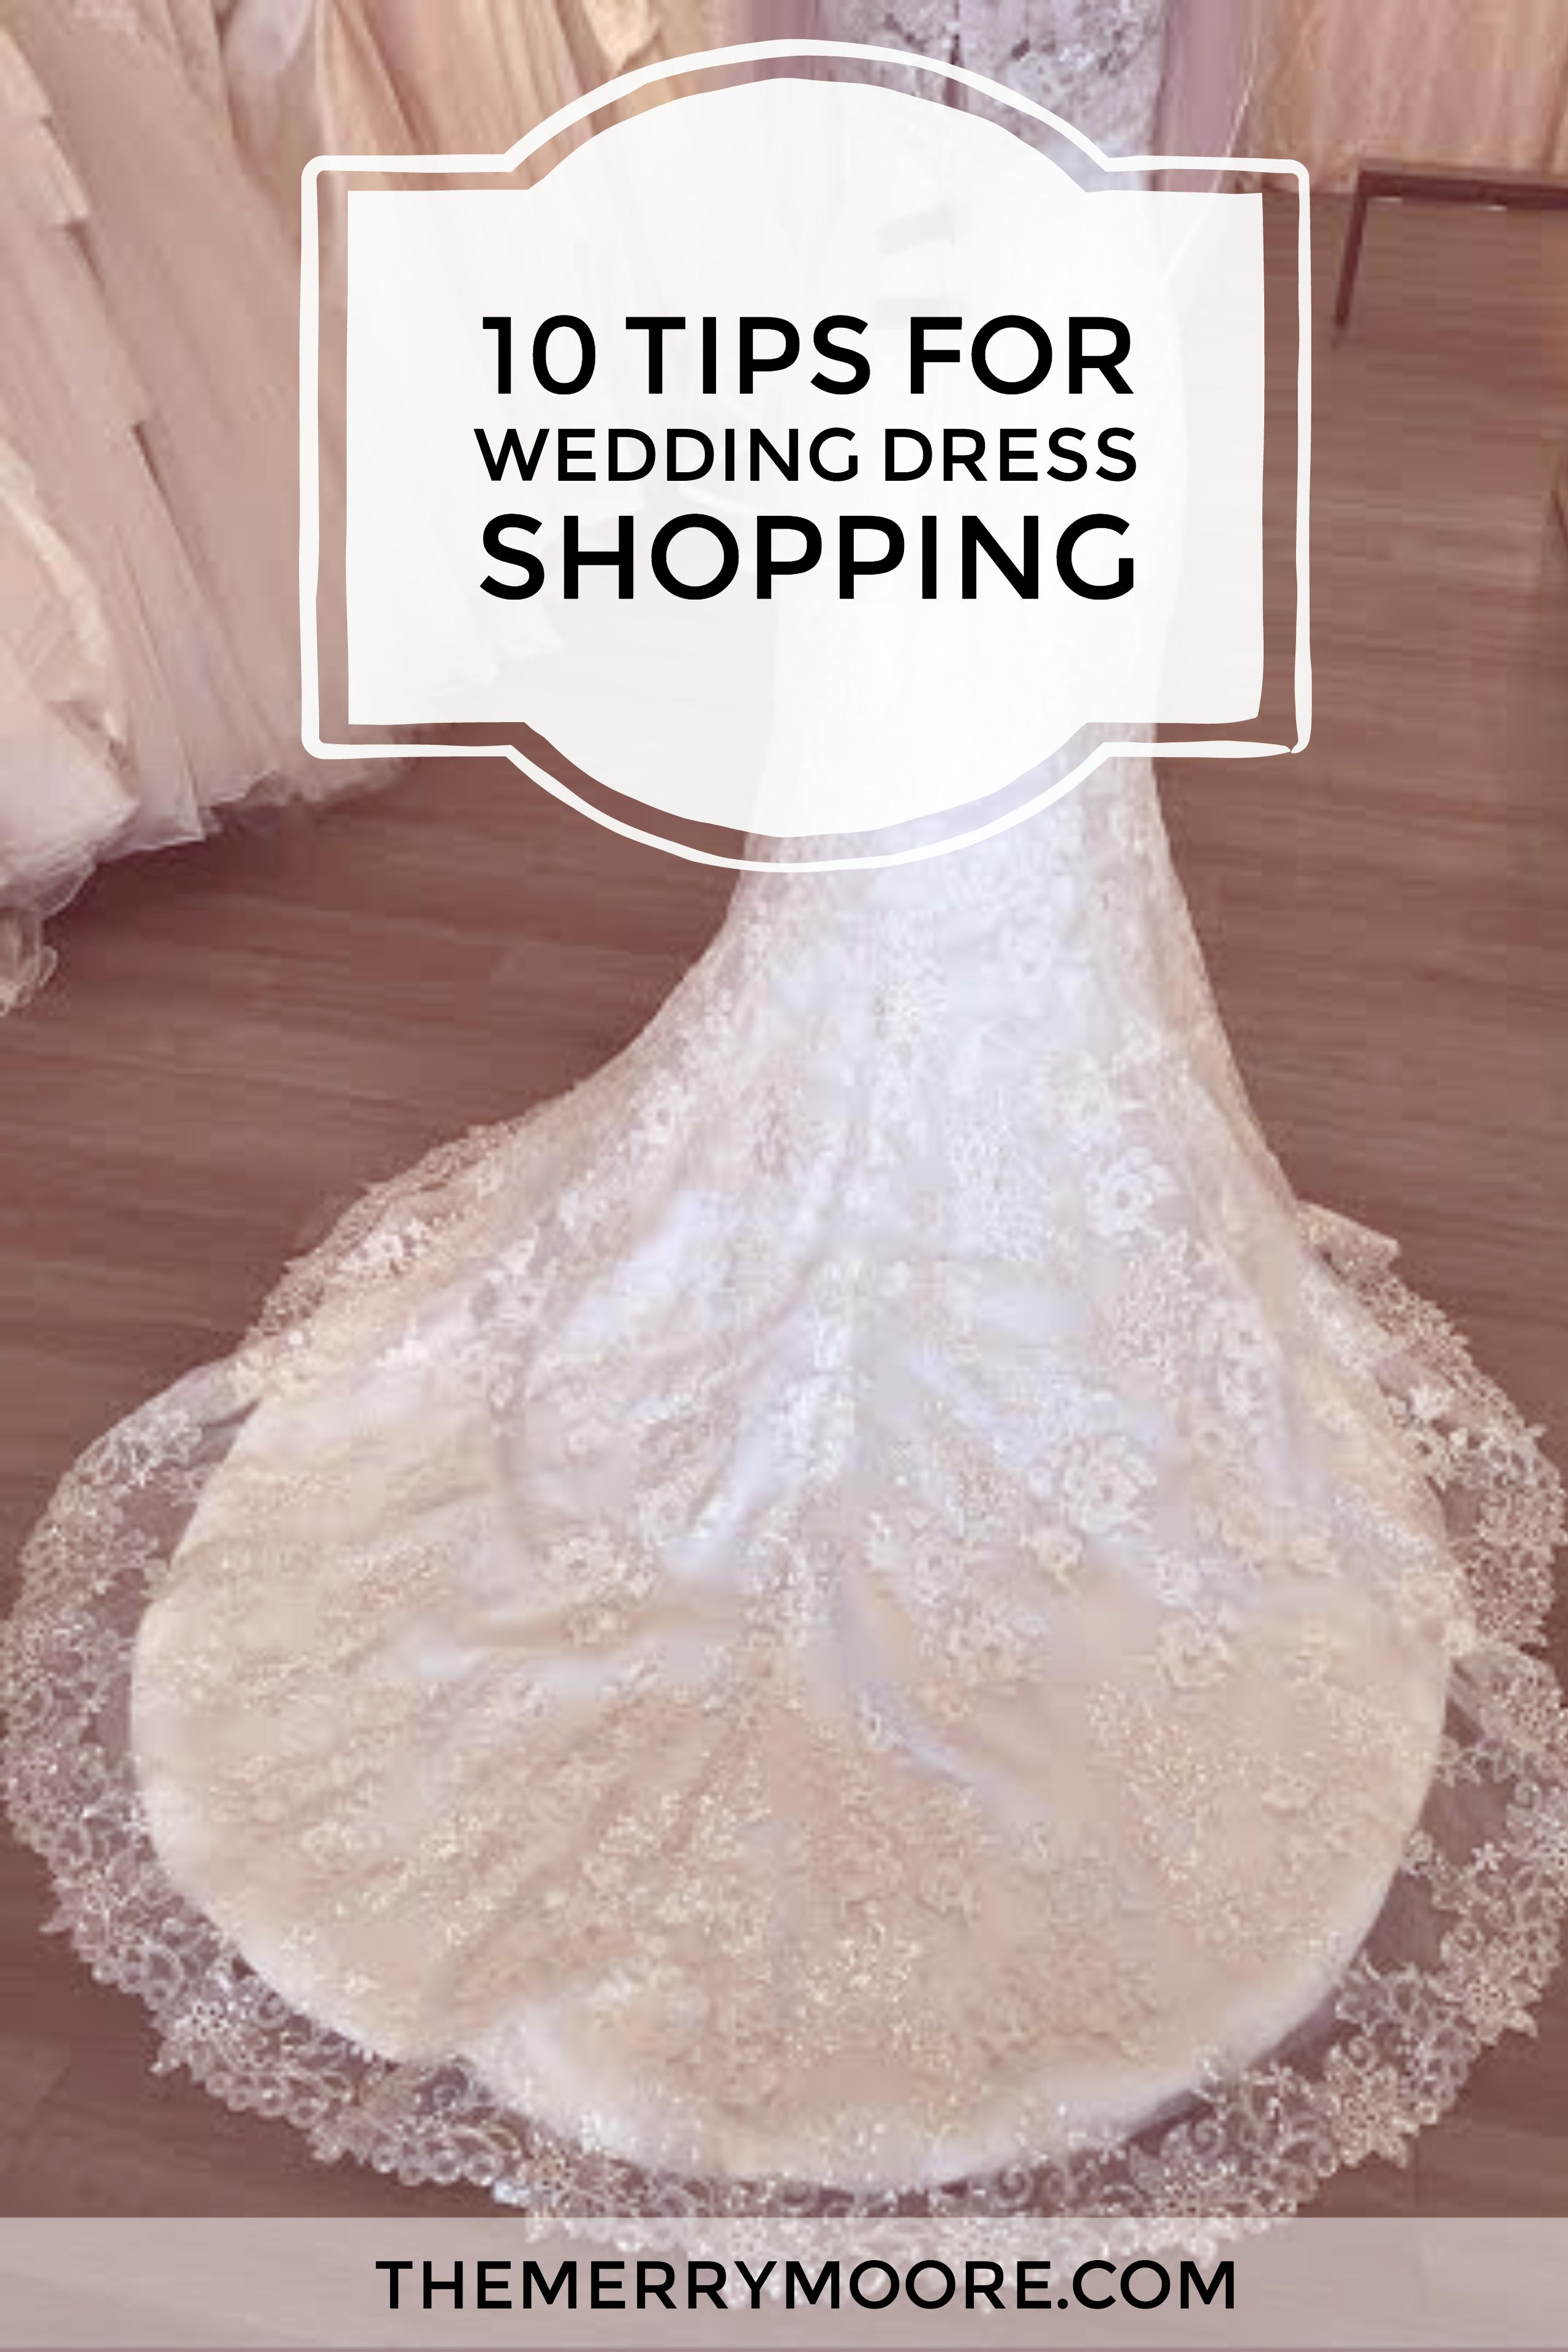 10 Tips for Wedding Dress Shopping - THE MERRY MOORE